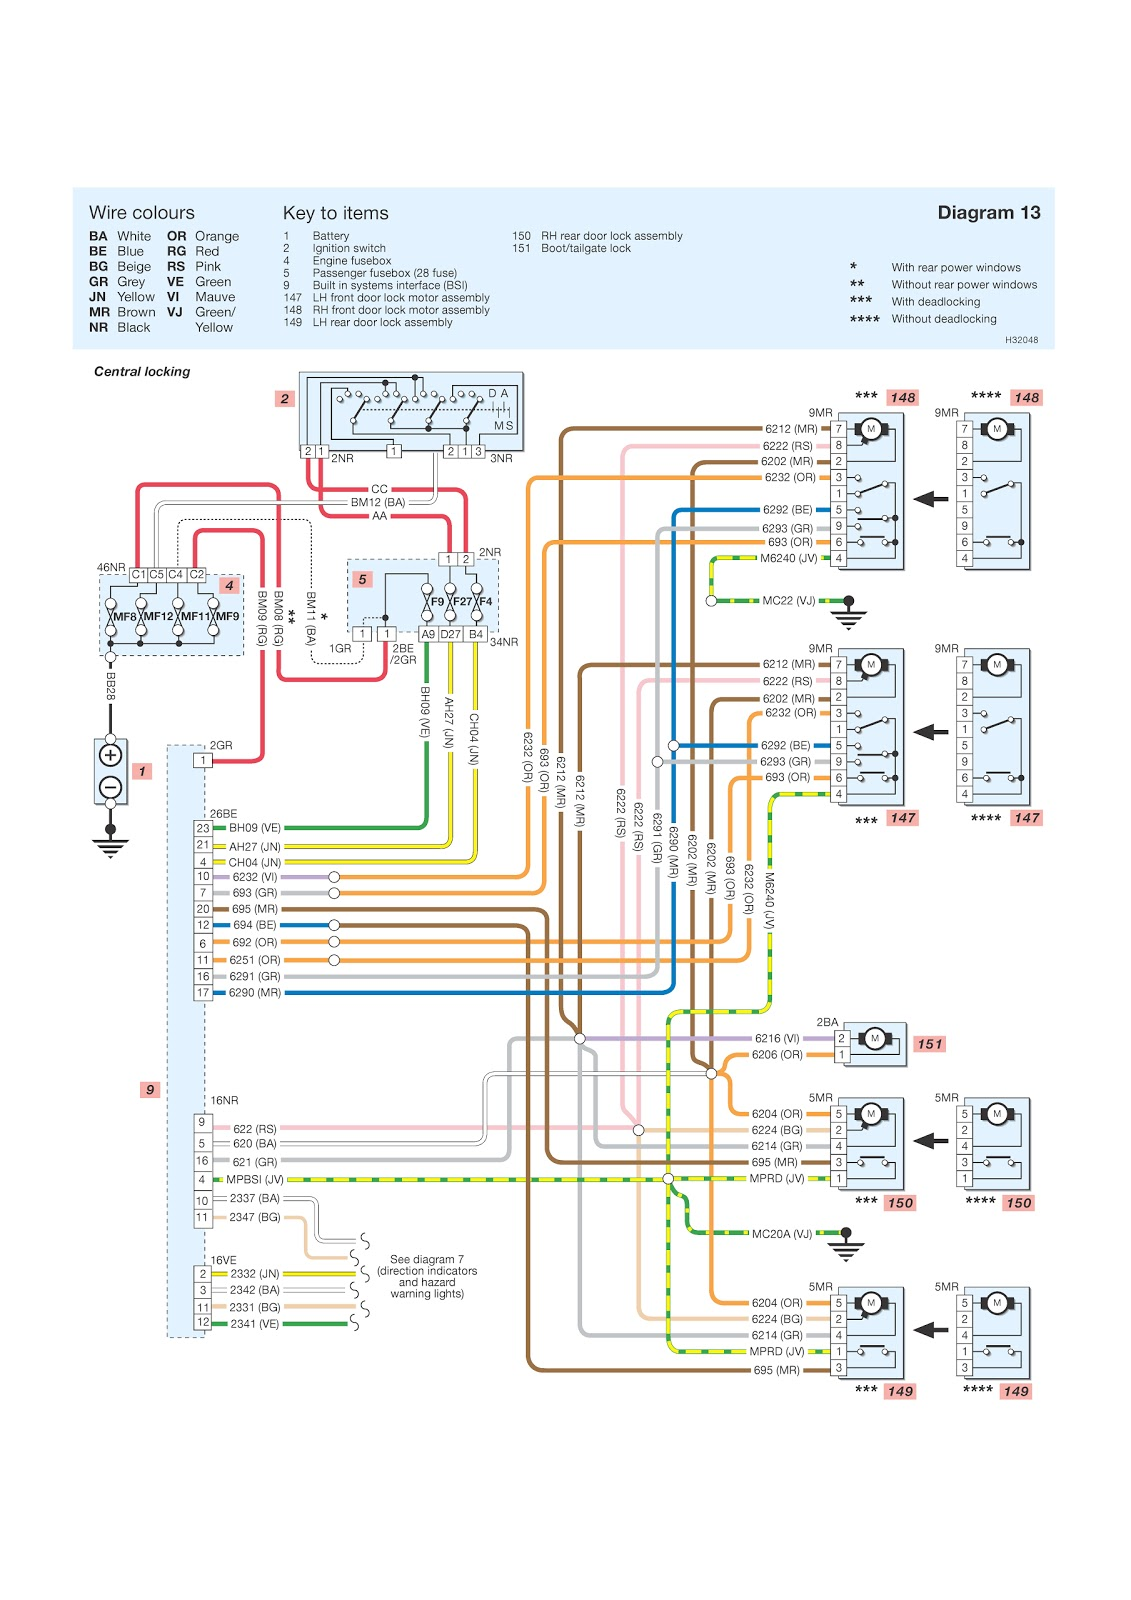 Peugeot 306 D Turbo Fuse Box Diagram Electric Window Wiring Simple Starting Know About Transmission 206 Diagrams